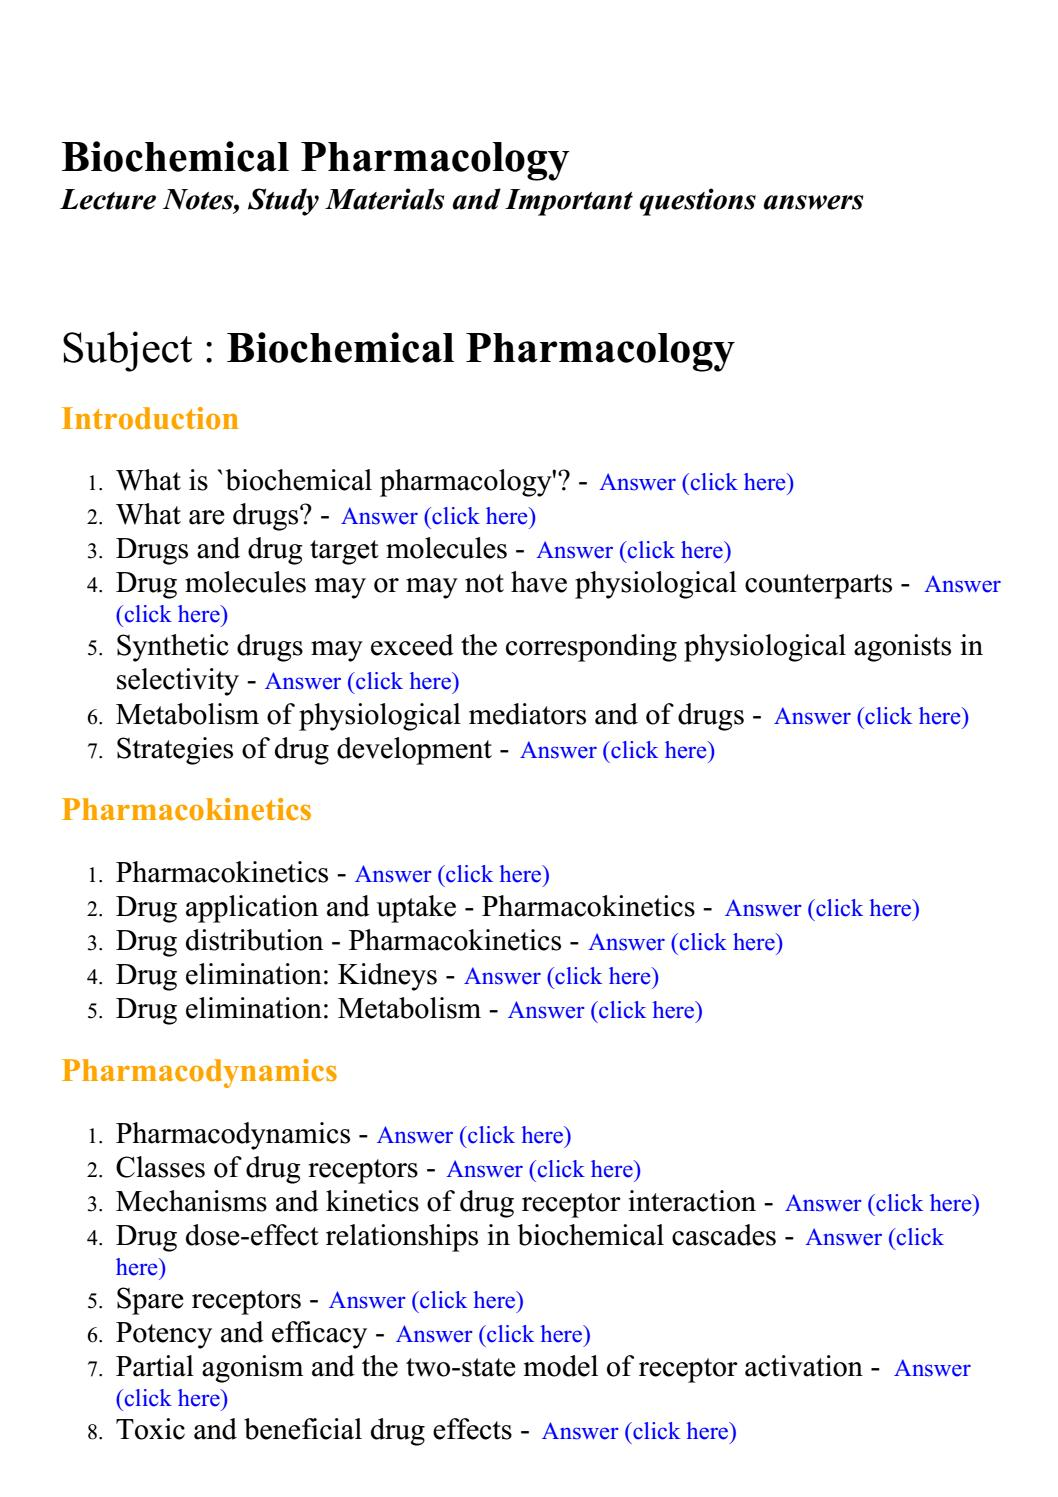 biochemical pharmacology answered questions